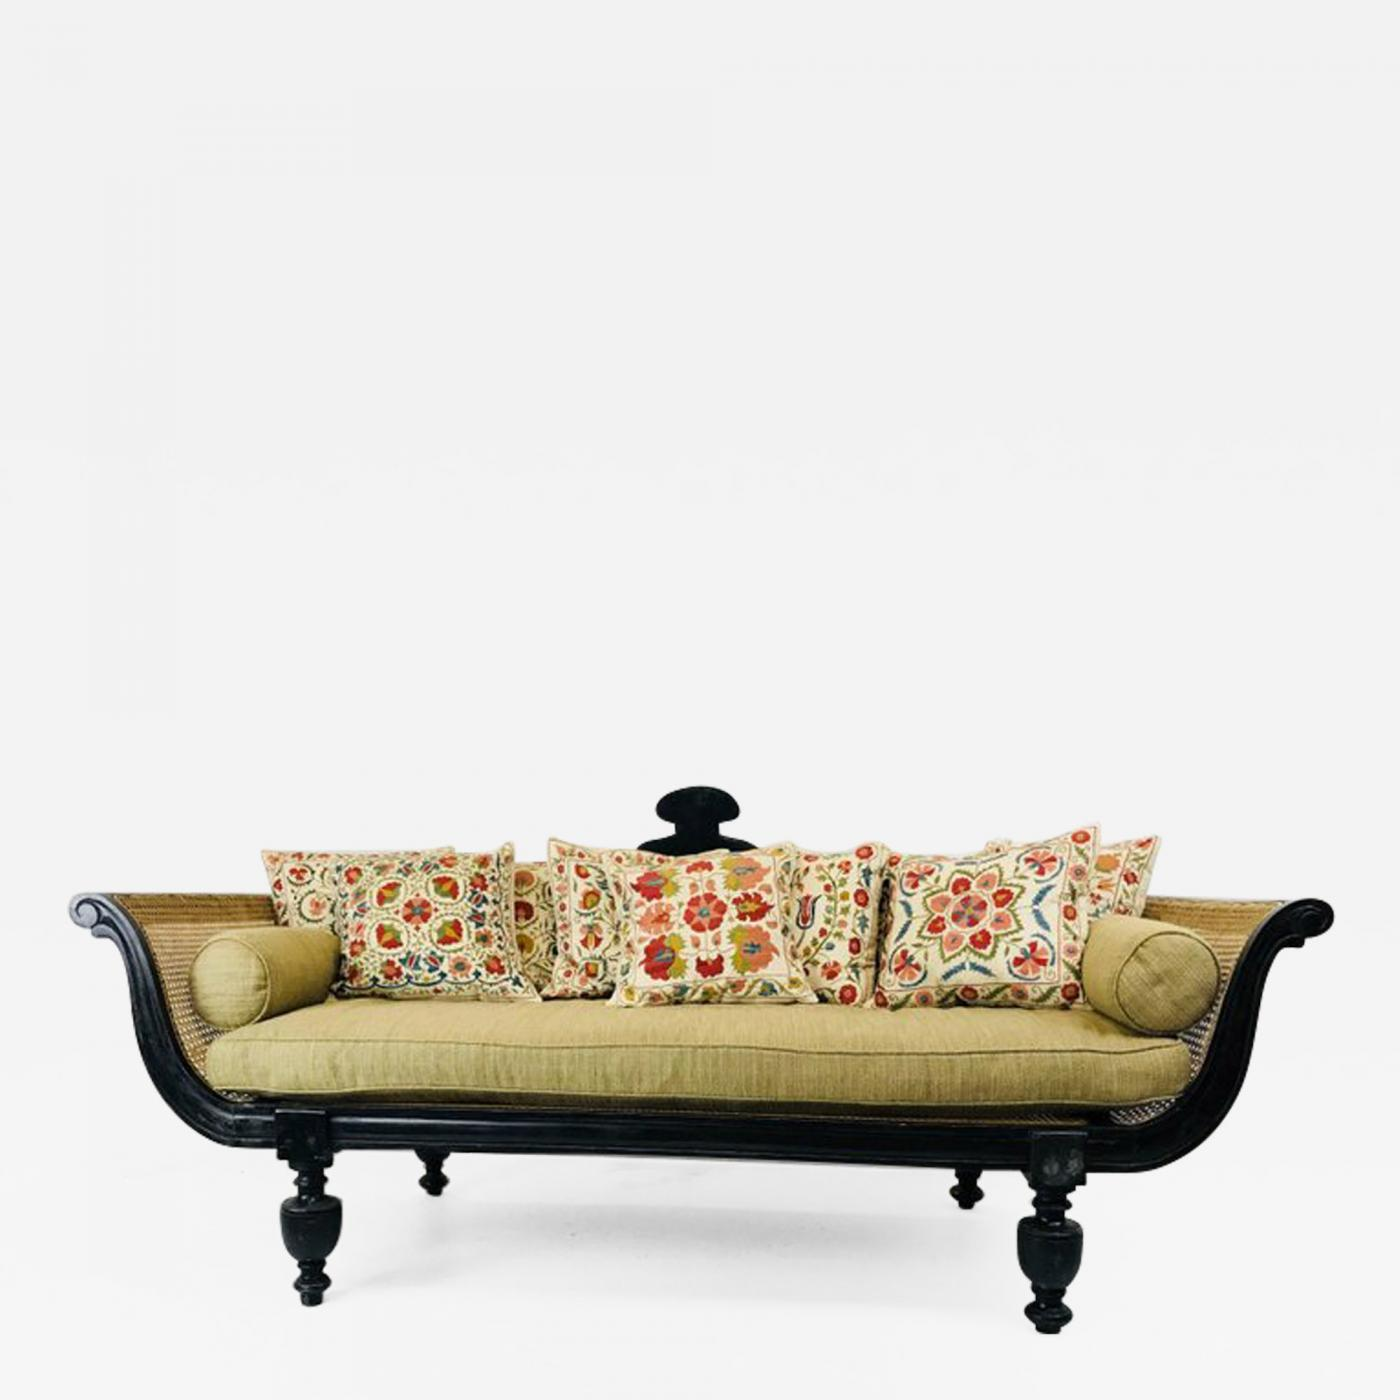 Listings / Furniture / Seating / Settees  Benches